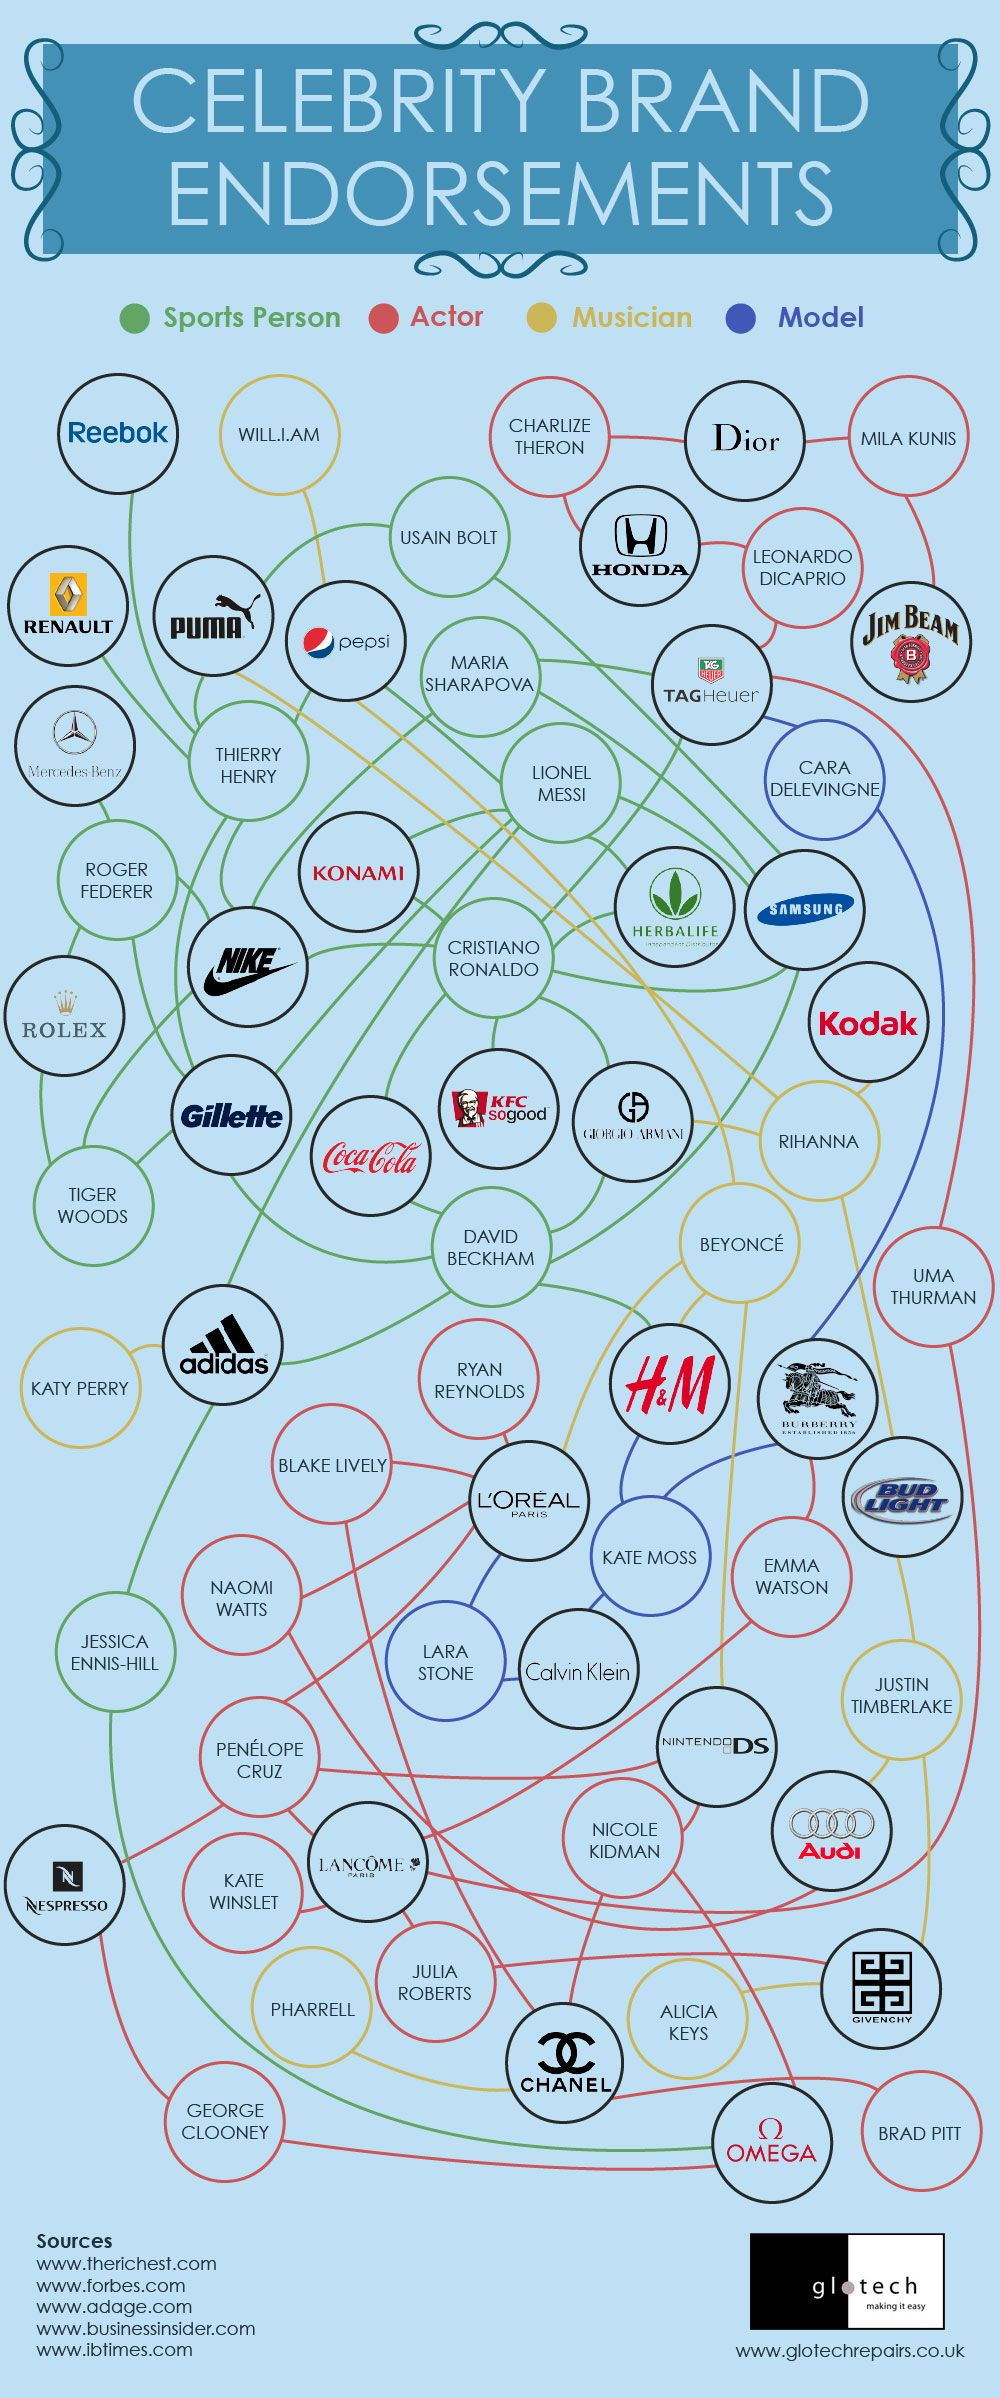 Celebrity Brand Endorsements #infographic